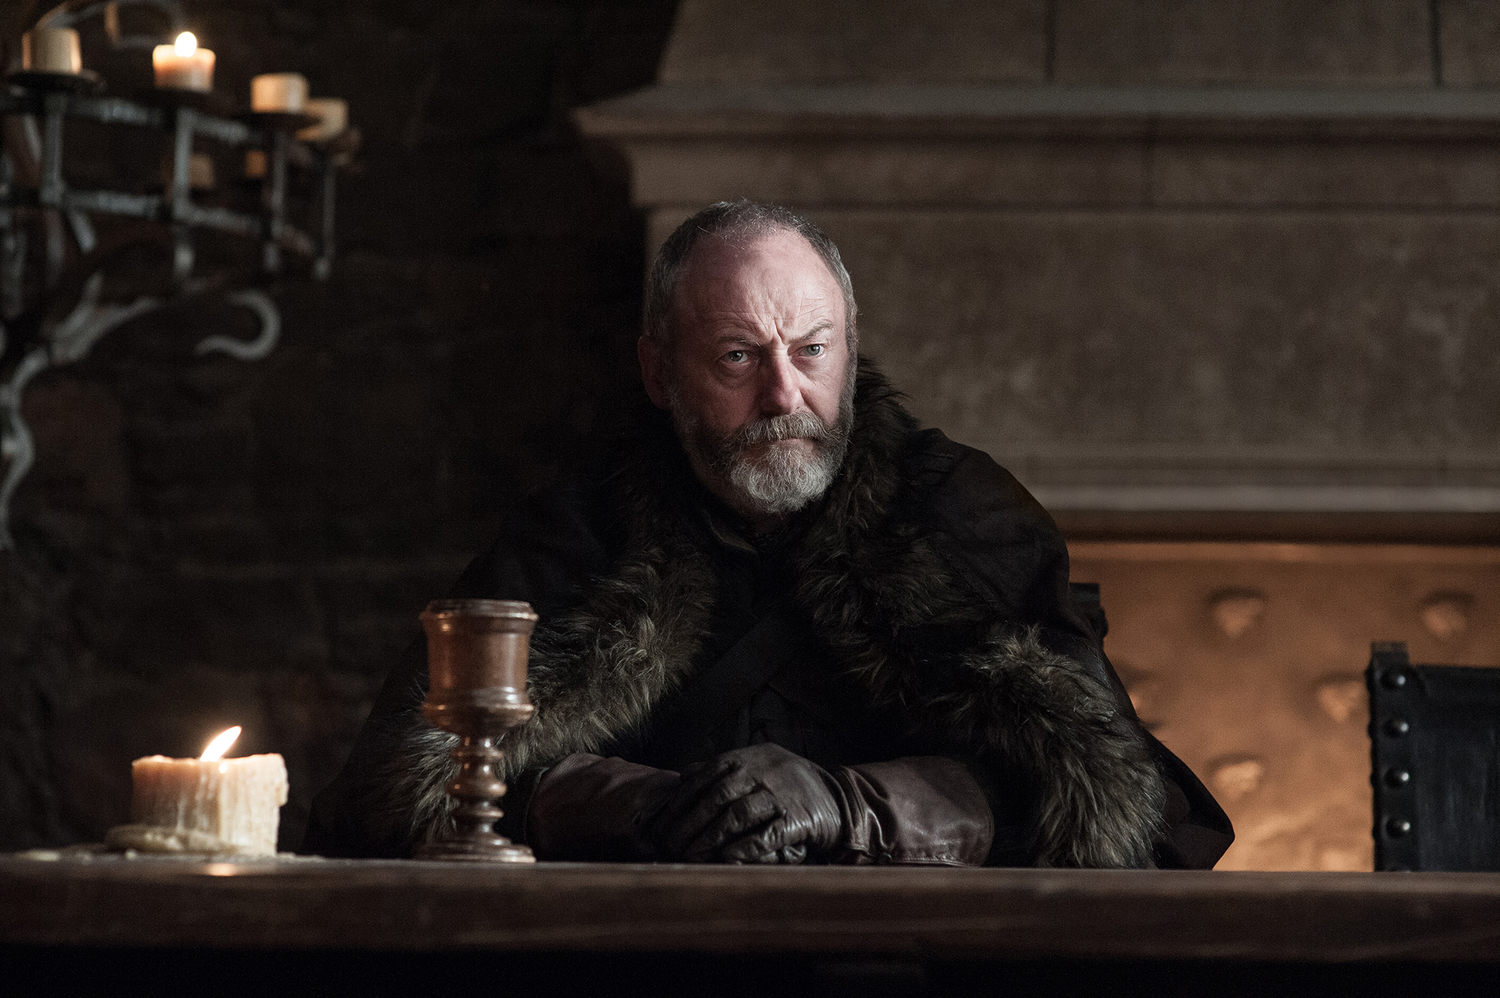 Davos Seaworth (Liam Cunningham) in Winterfell / Photo: Helen Sloan/HBO